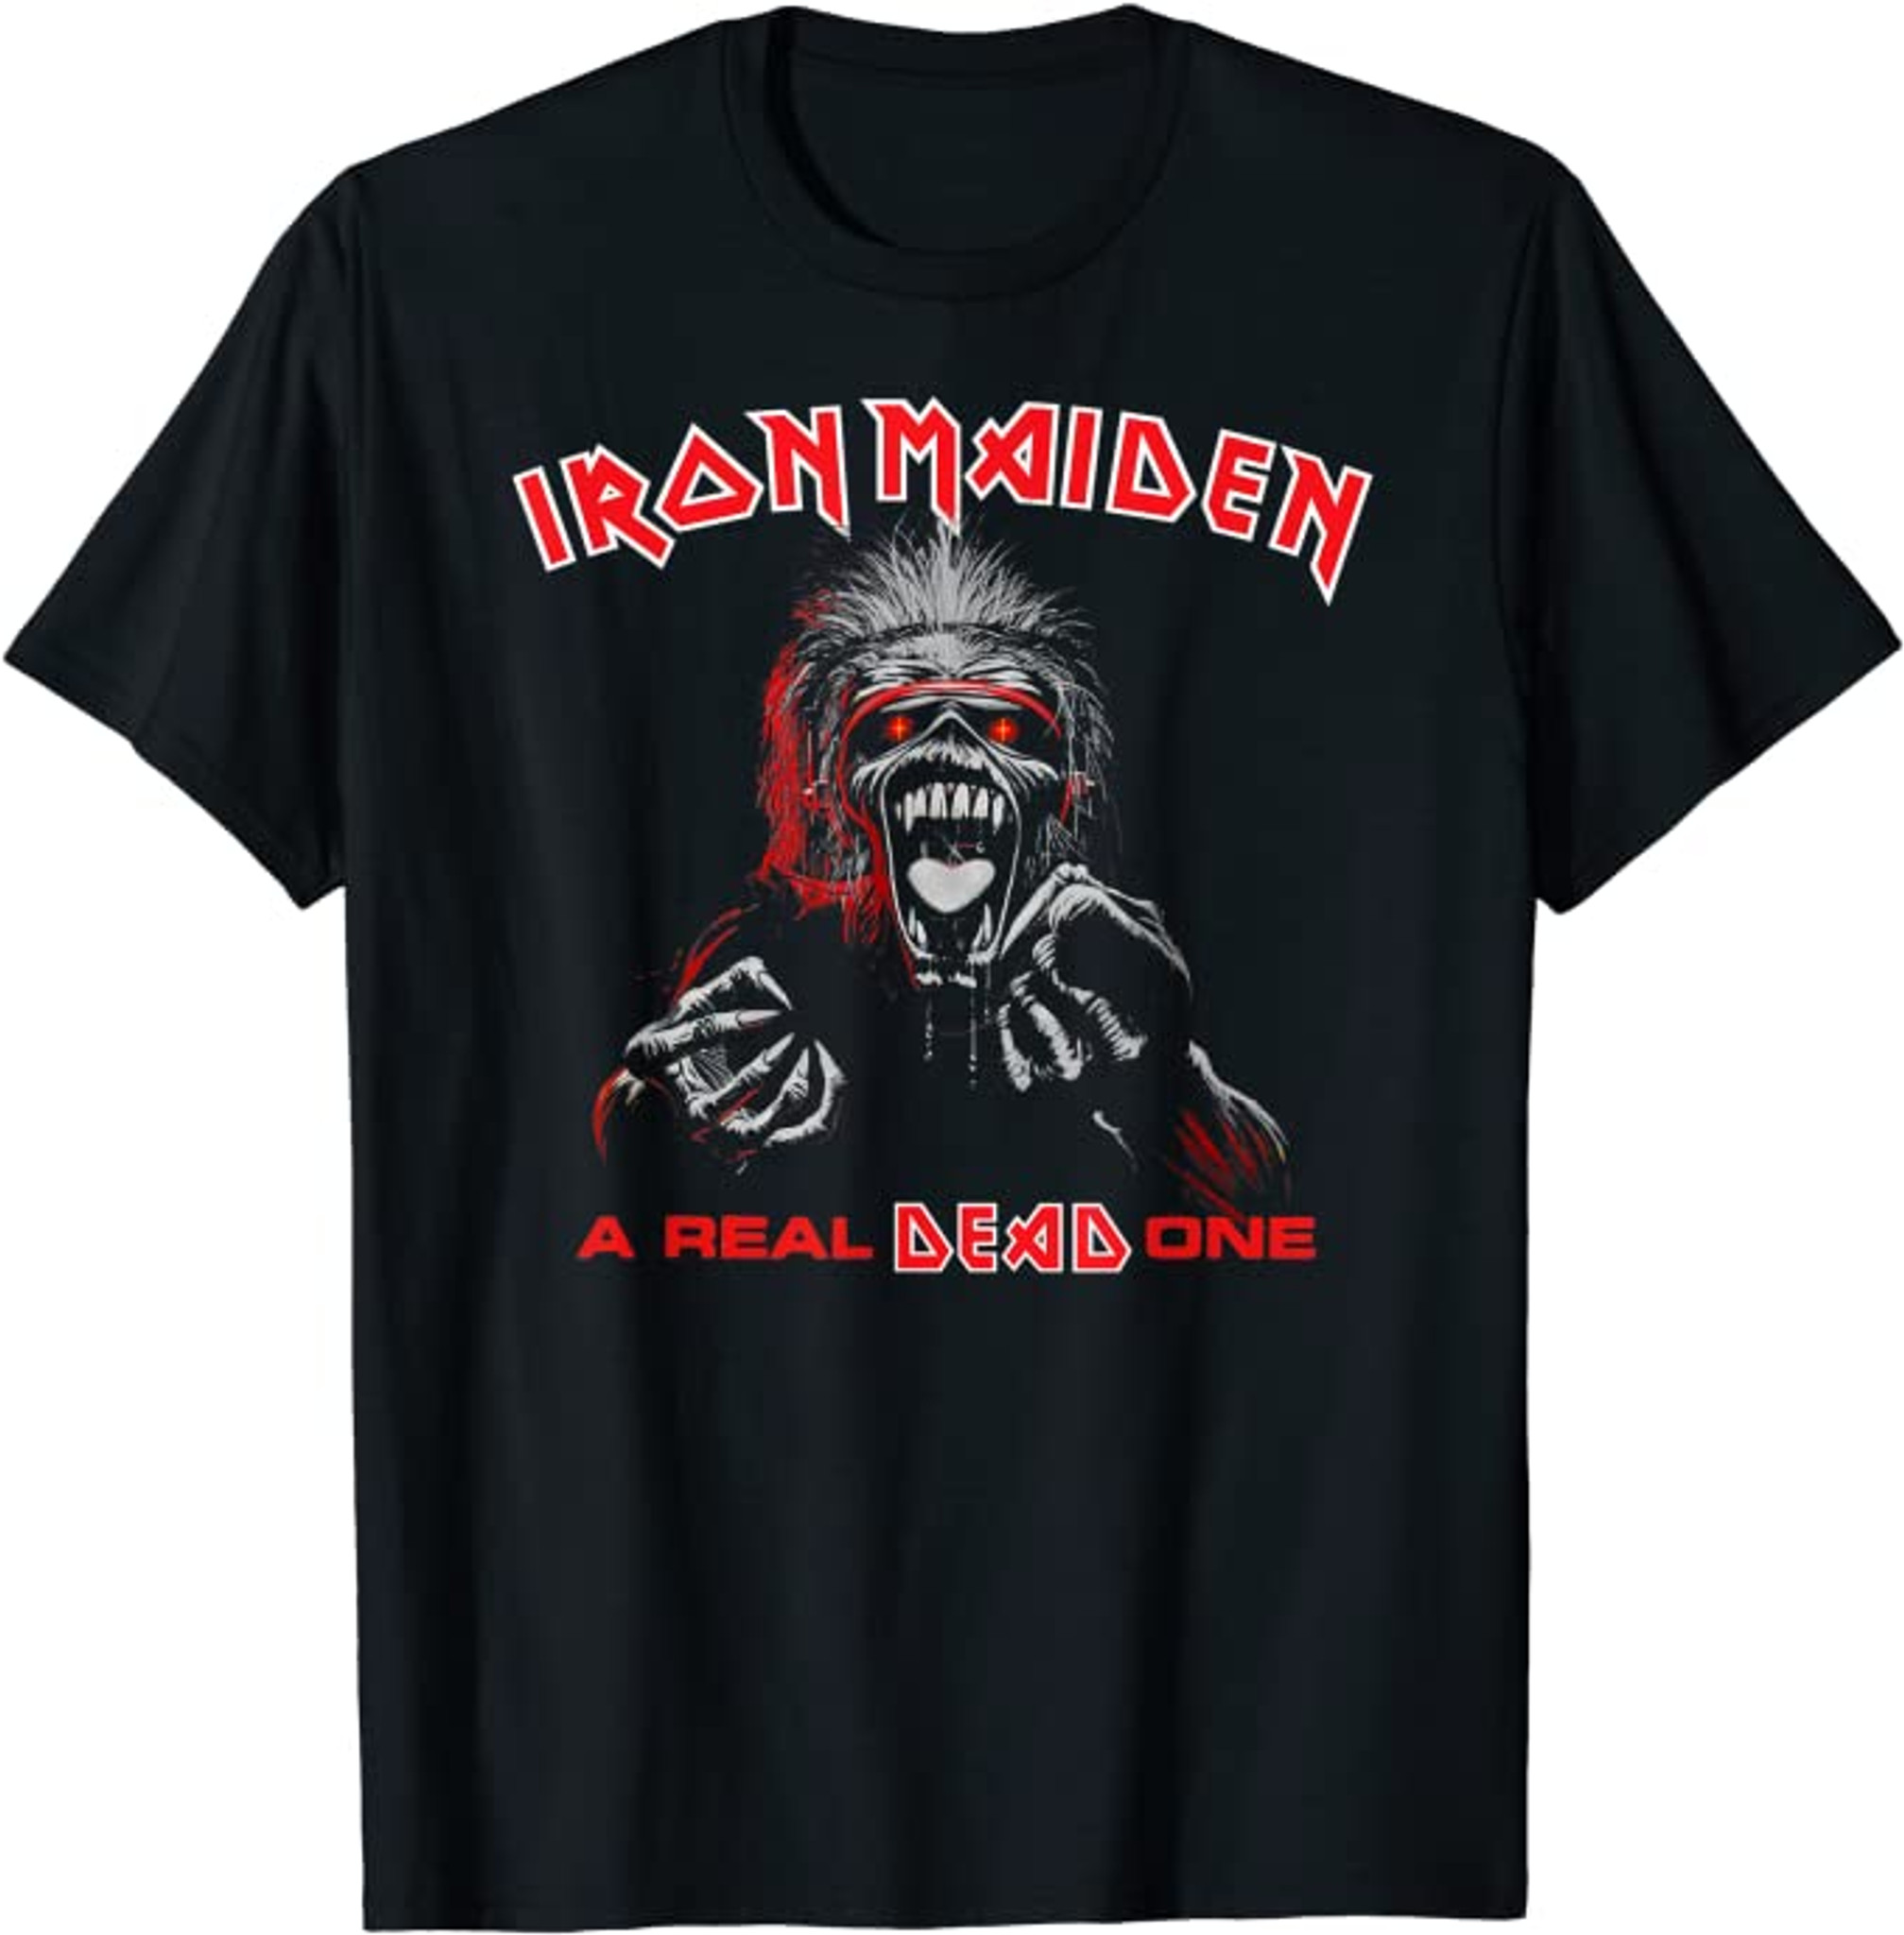 IRON MAIDEN Real Dead One Mens T Shirt Unisex Tee Official Licensed Band Merch